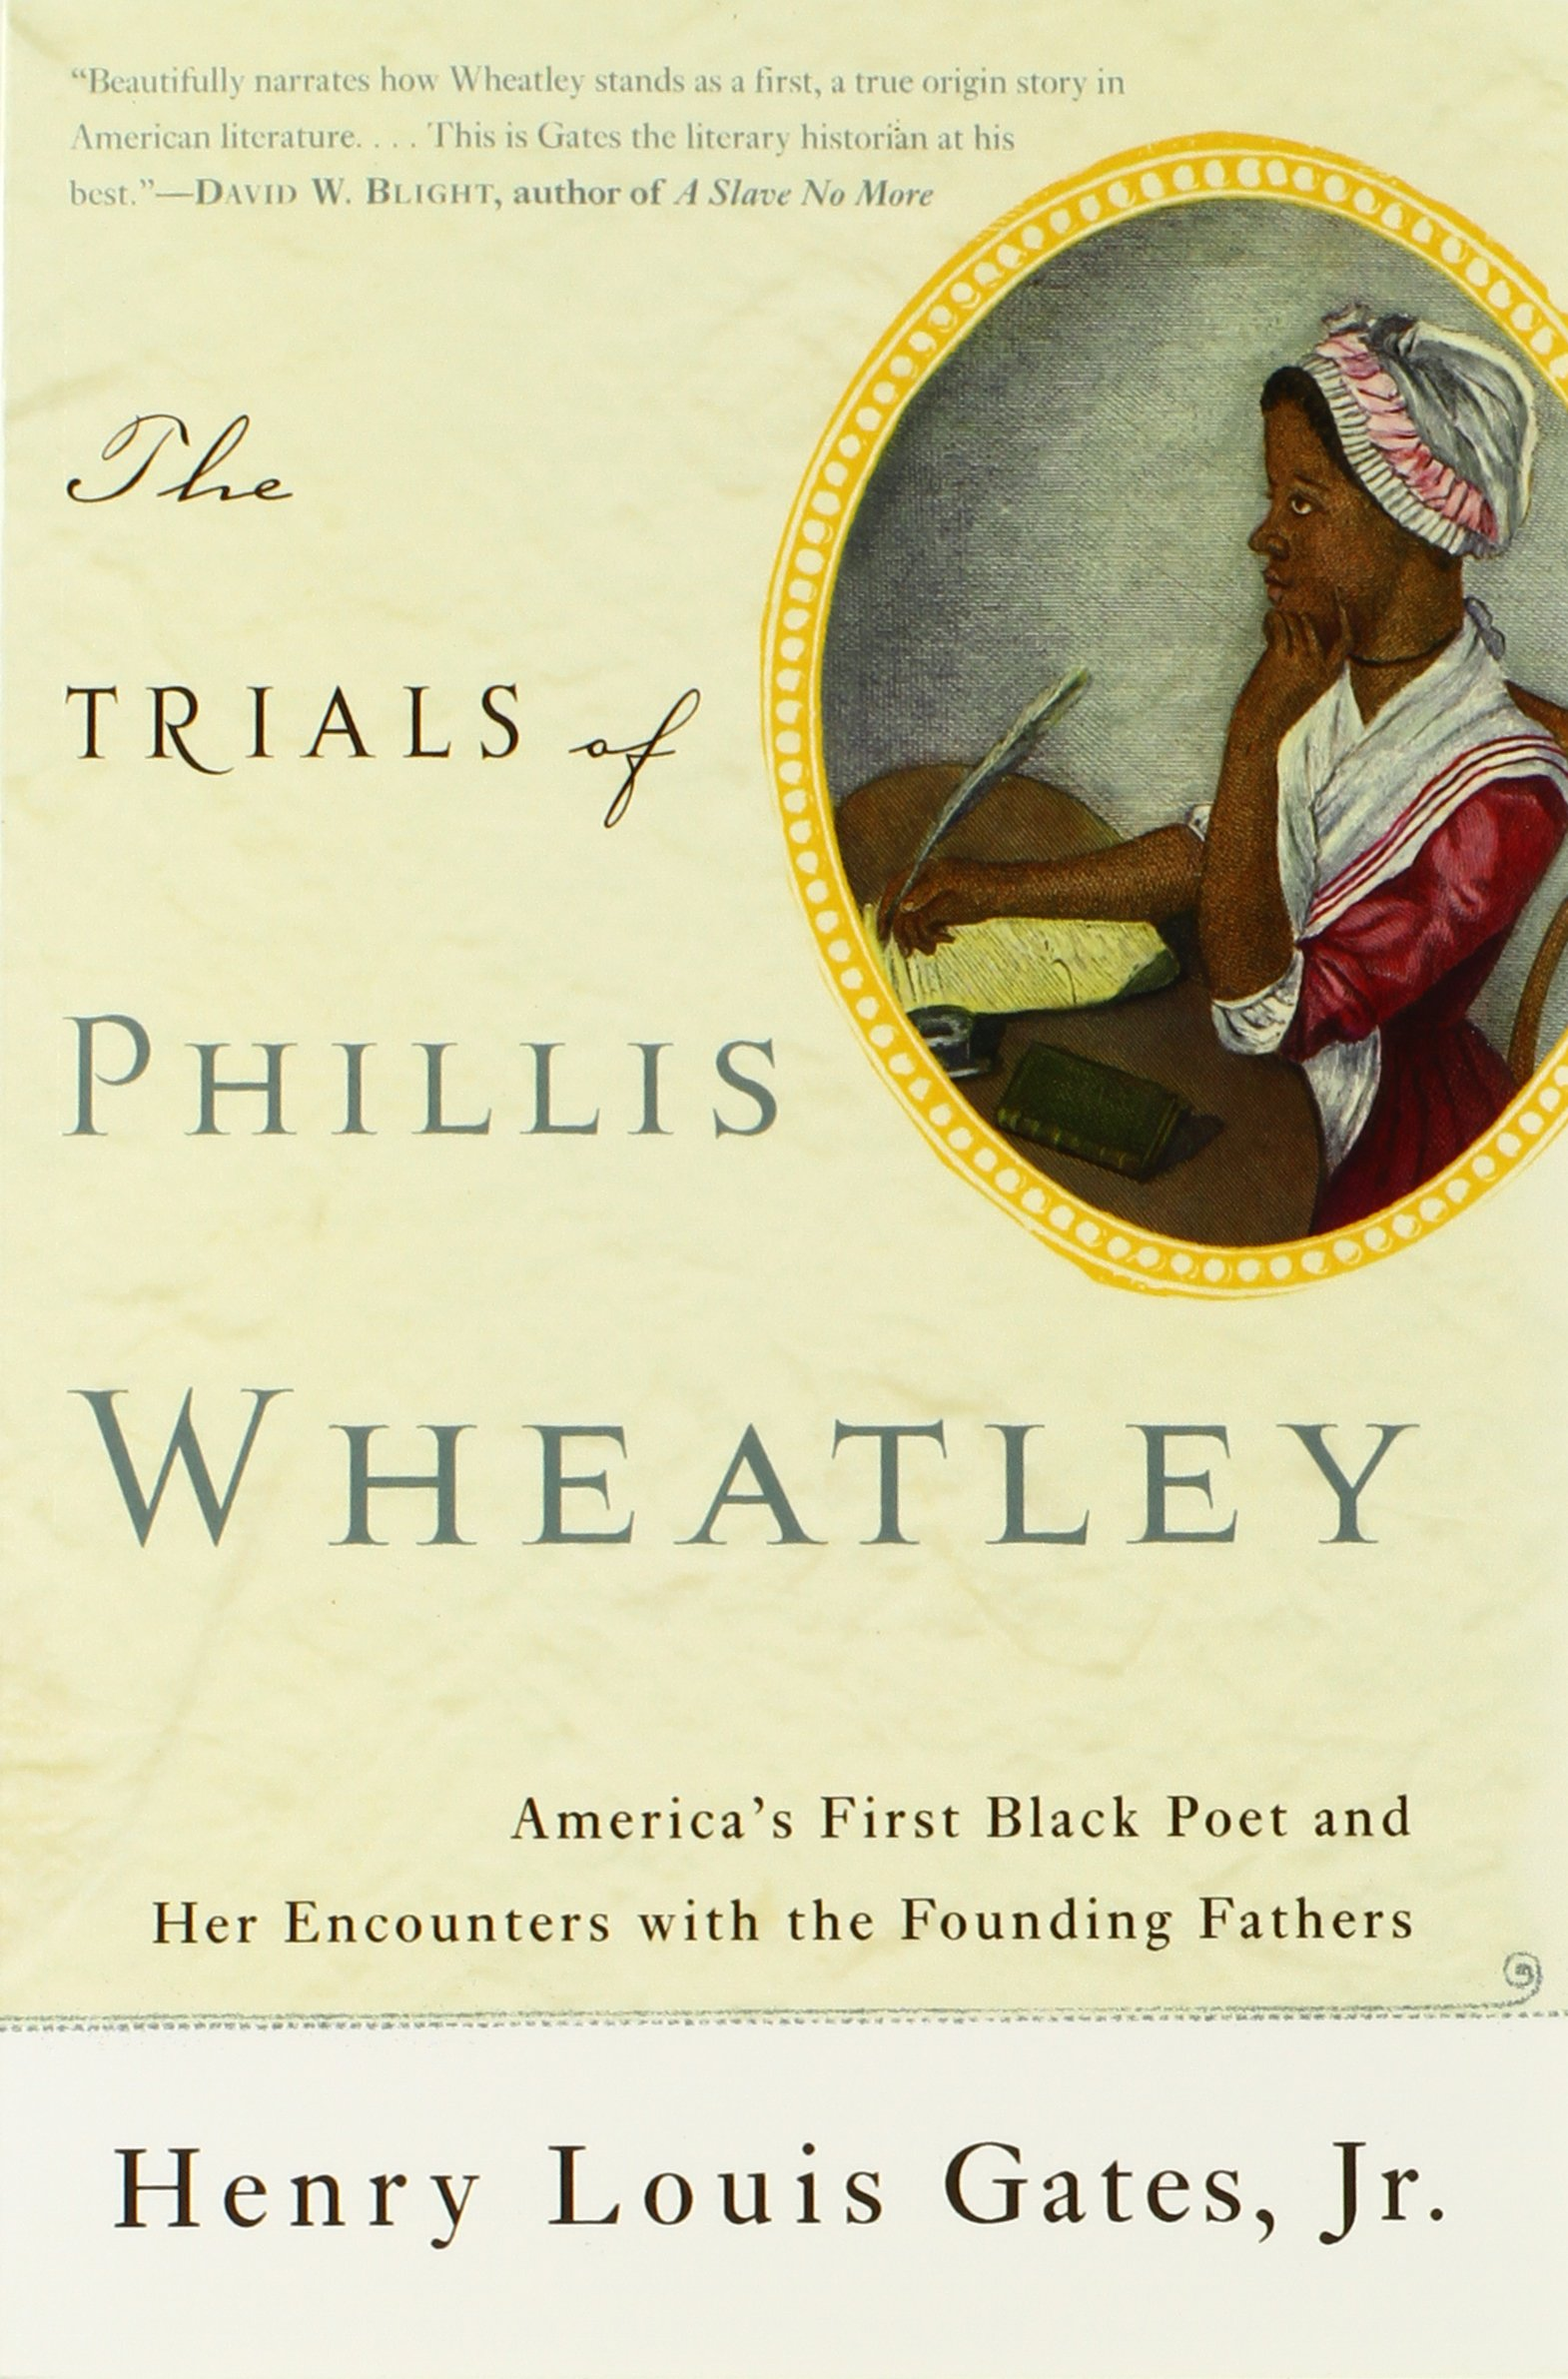 com the trials of phillis wheatley america s first black com the trials of phillis wheatley america s first black poet and her encounters the founding fathers 9780465018505 henry louis gates